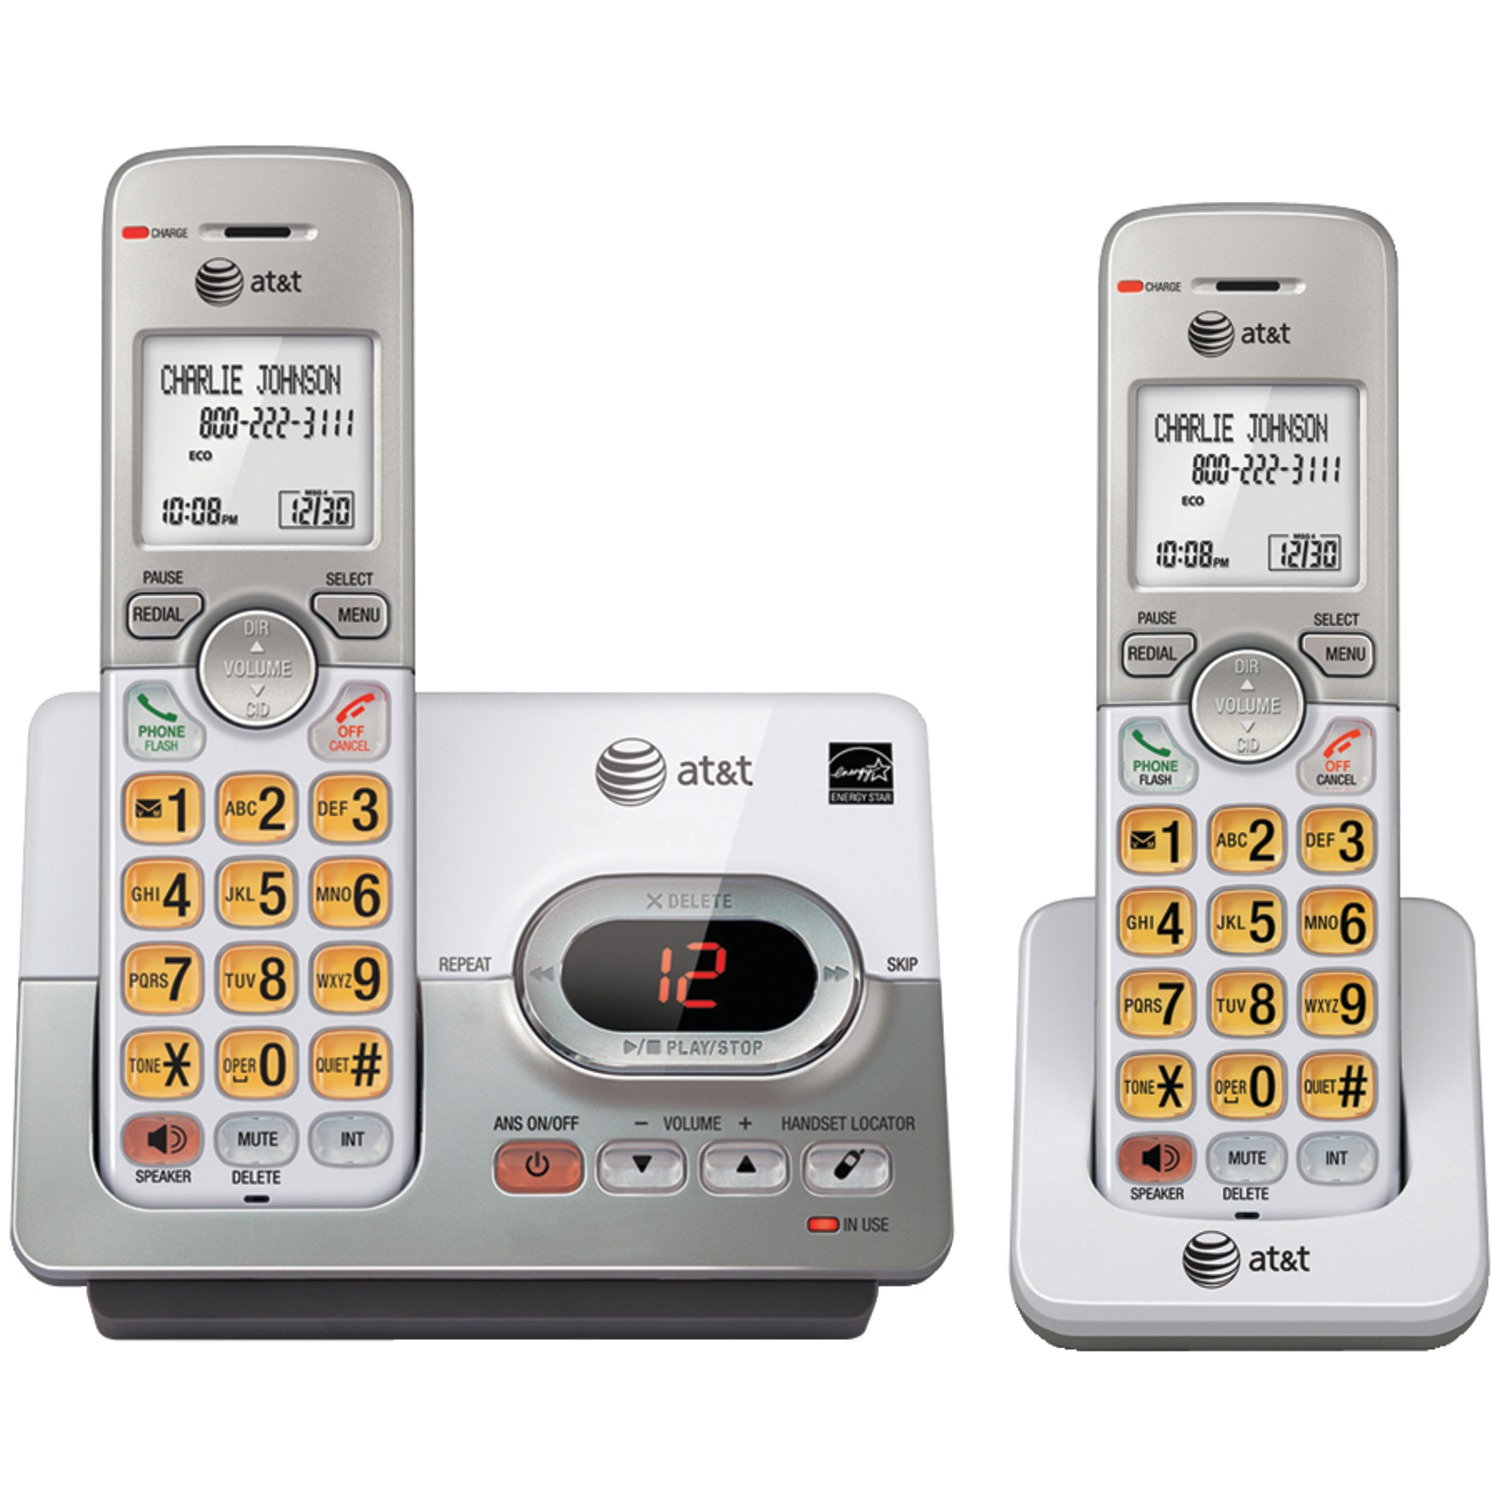 AT&T ATTEL52203 Dect 6.0 2-Handset Answering System With Caller ID & Call Waiting